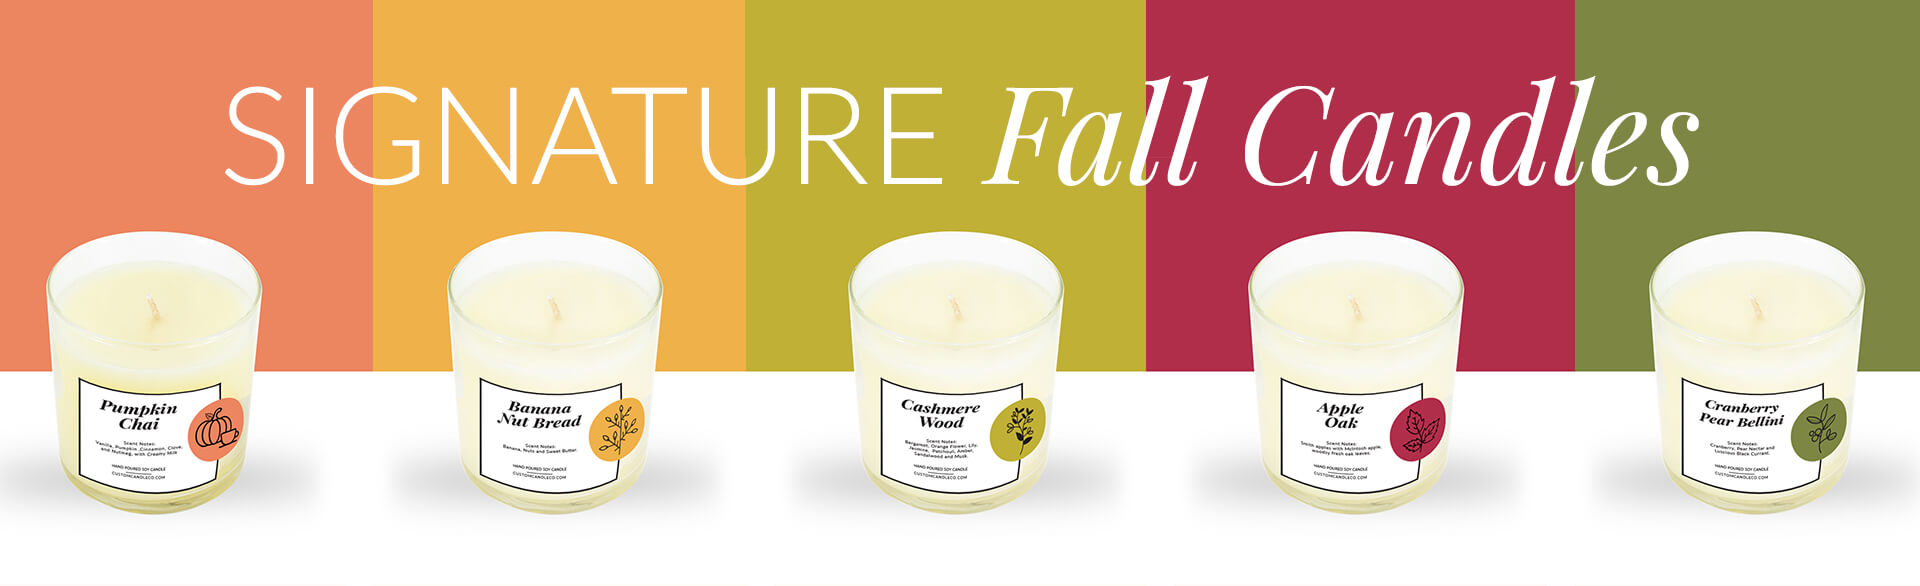 Signature Fall Candles